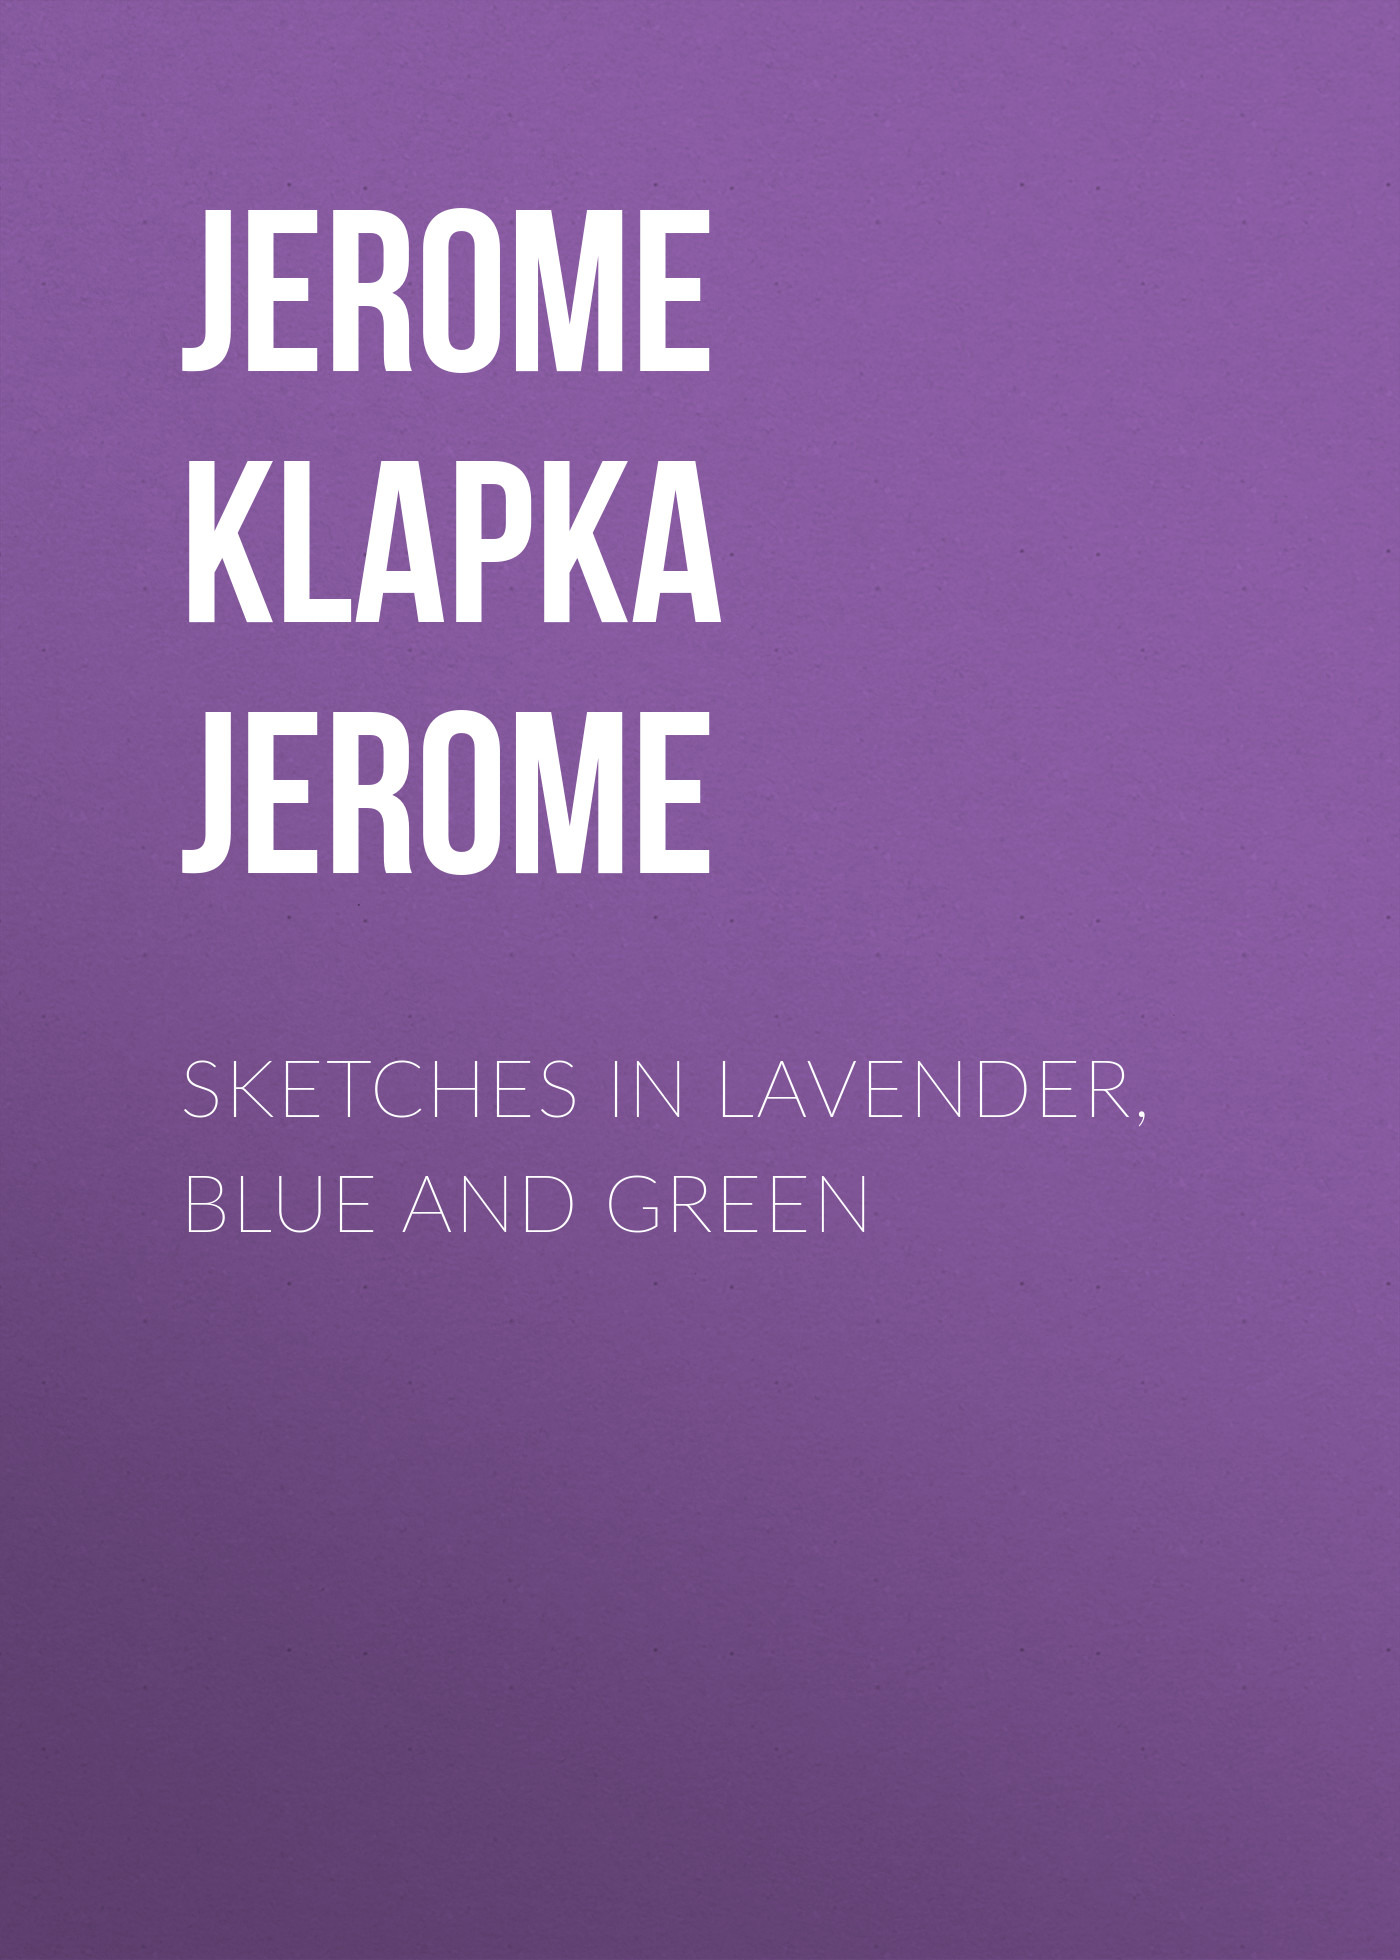 Джером Клапка Джером Sketches in Lavender, Blue and Green sketches in lavender blue and green